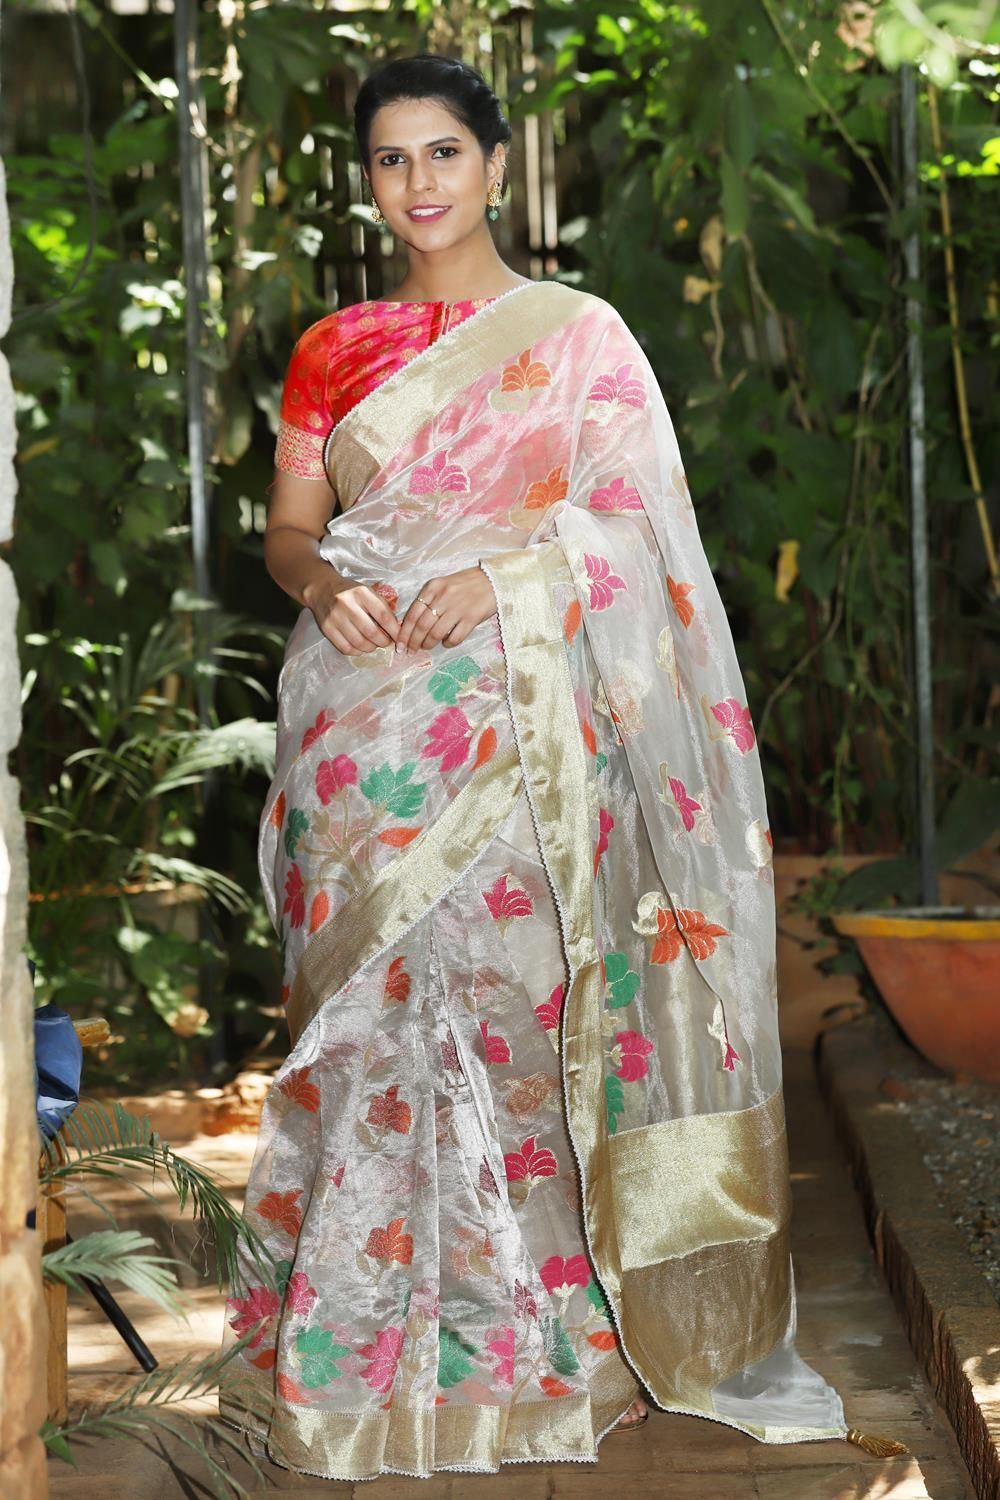 2662e65b30a50 Silver tissue floral saree with gold zari border and pearl bead edging   saree  blouse  houseofblouse  indian  bollywood  style  designer  silver   tissue ...